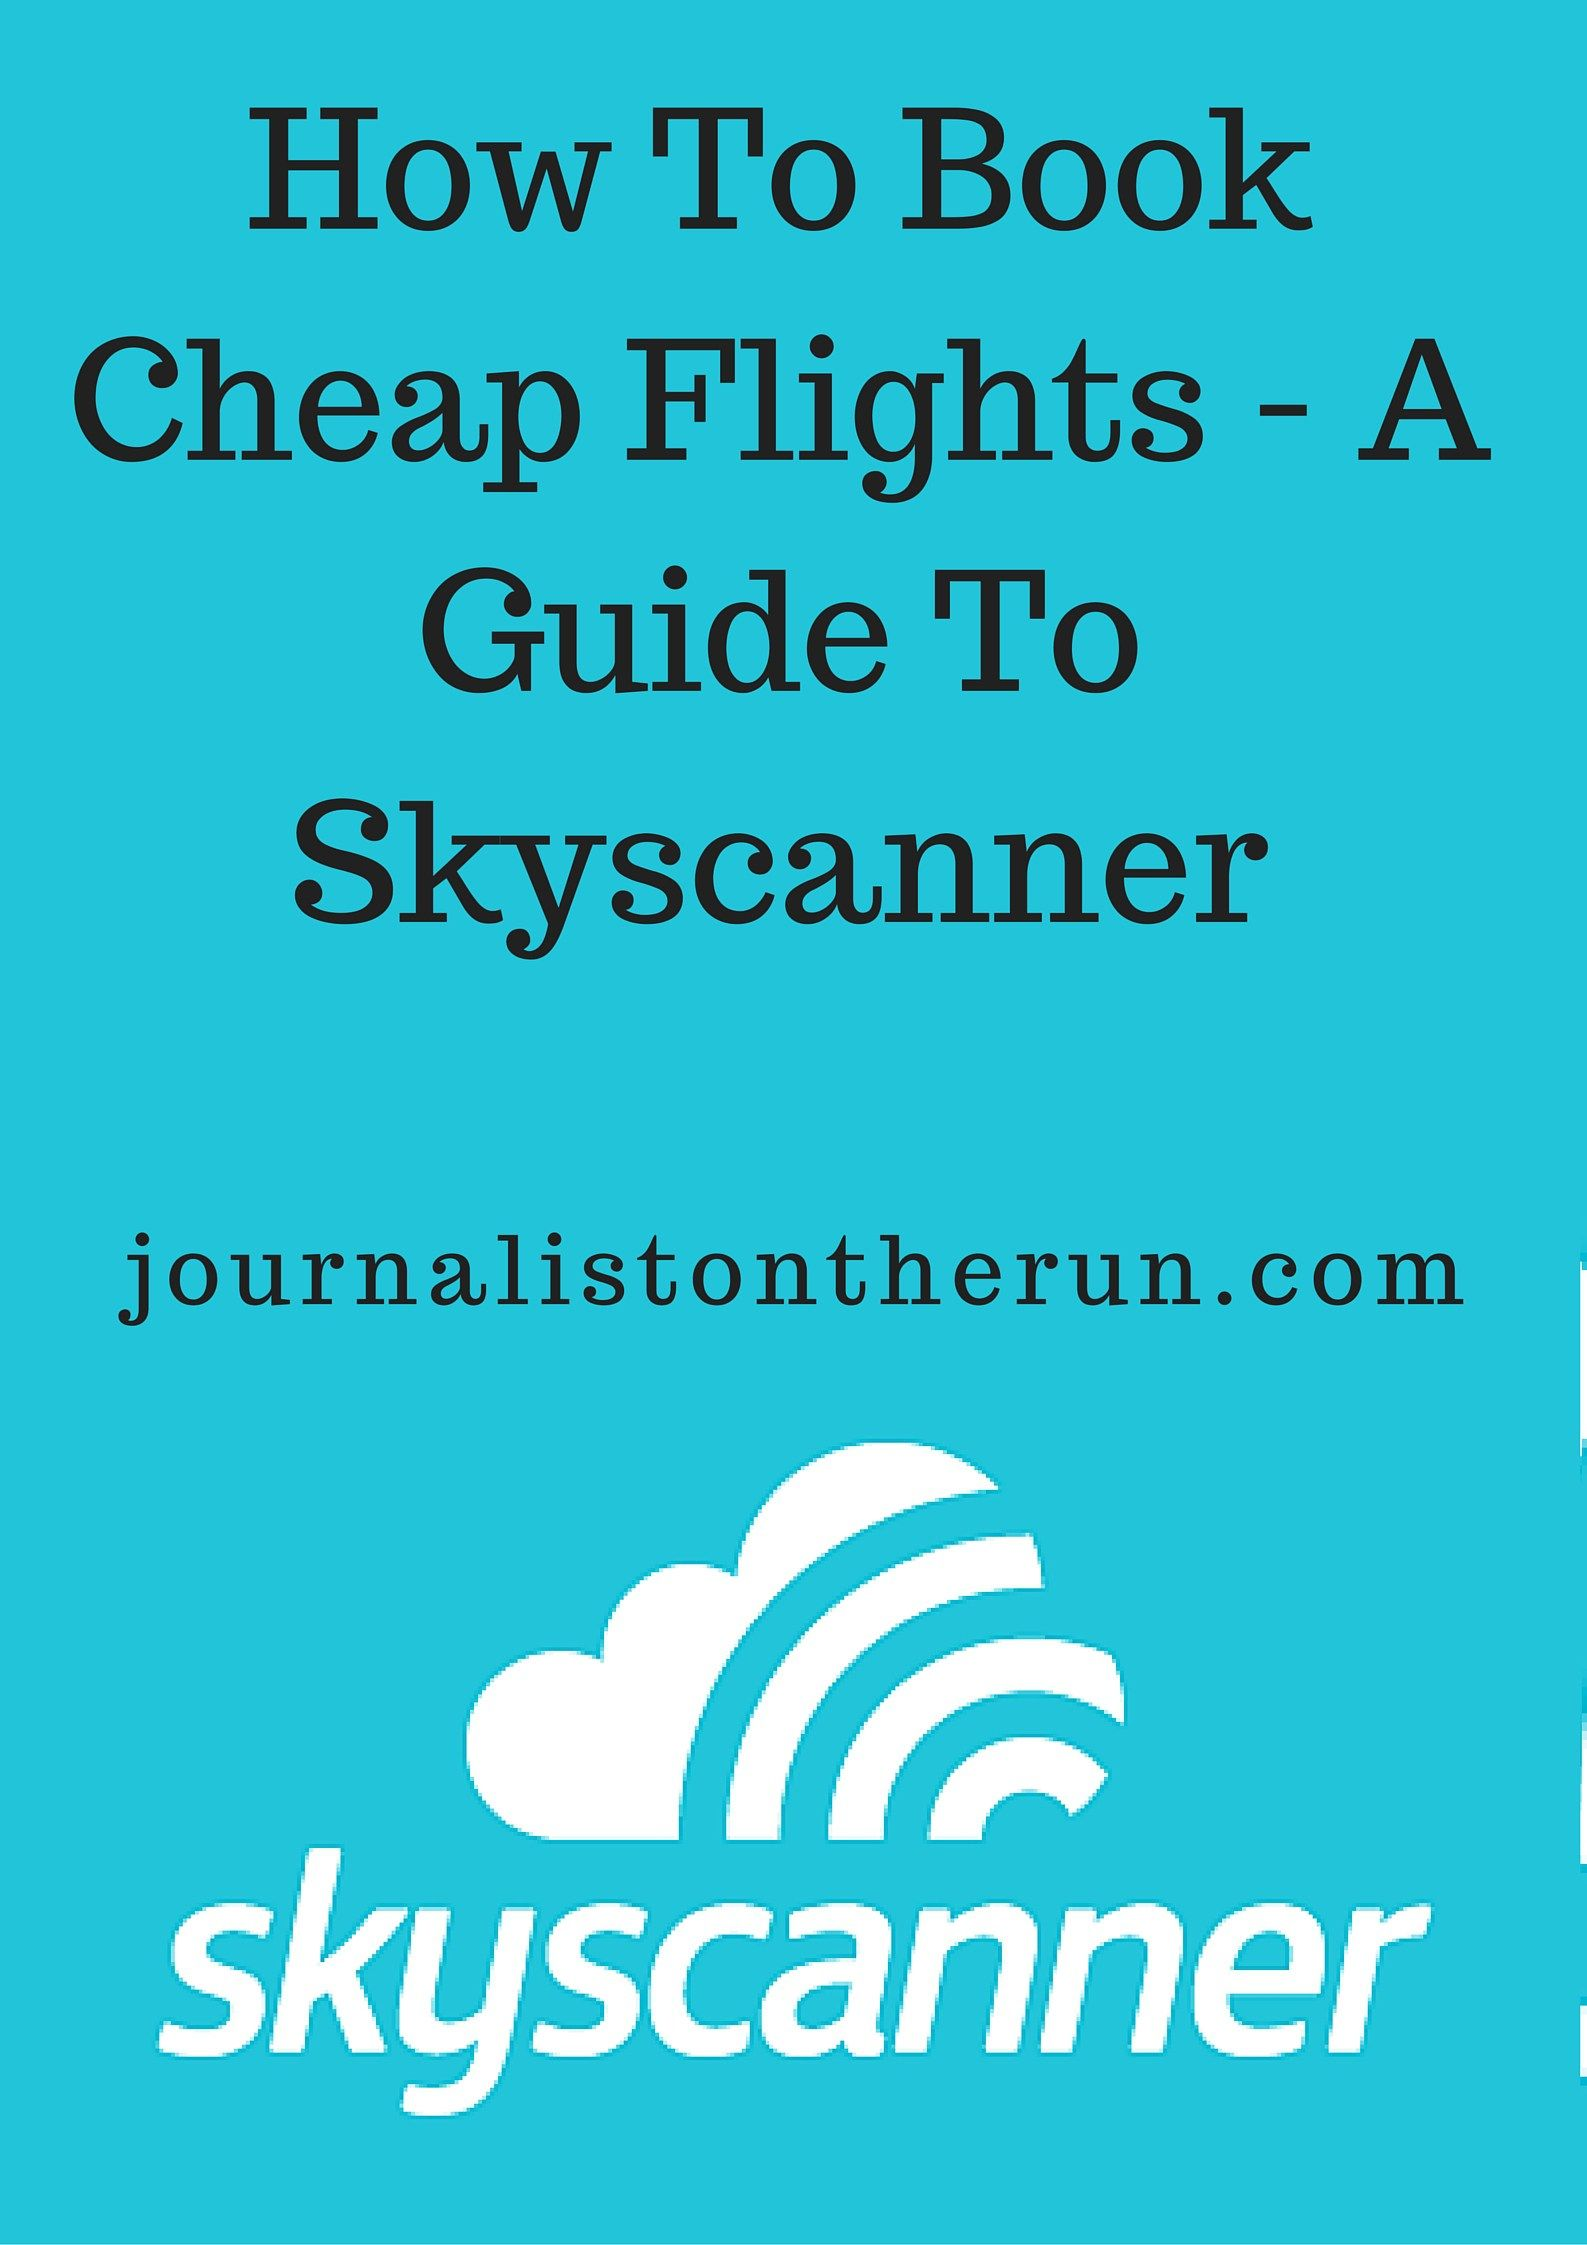 Cheap Flights: Find Cheap Tickets, Flights & Airfare ...